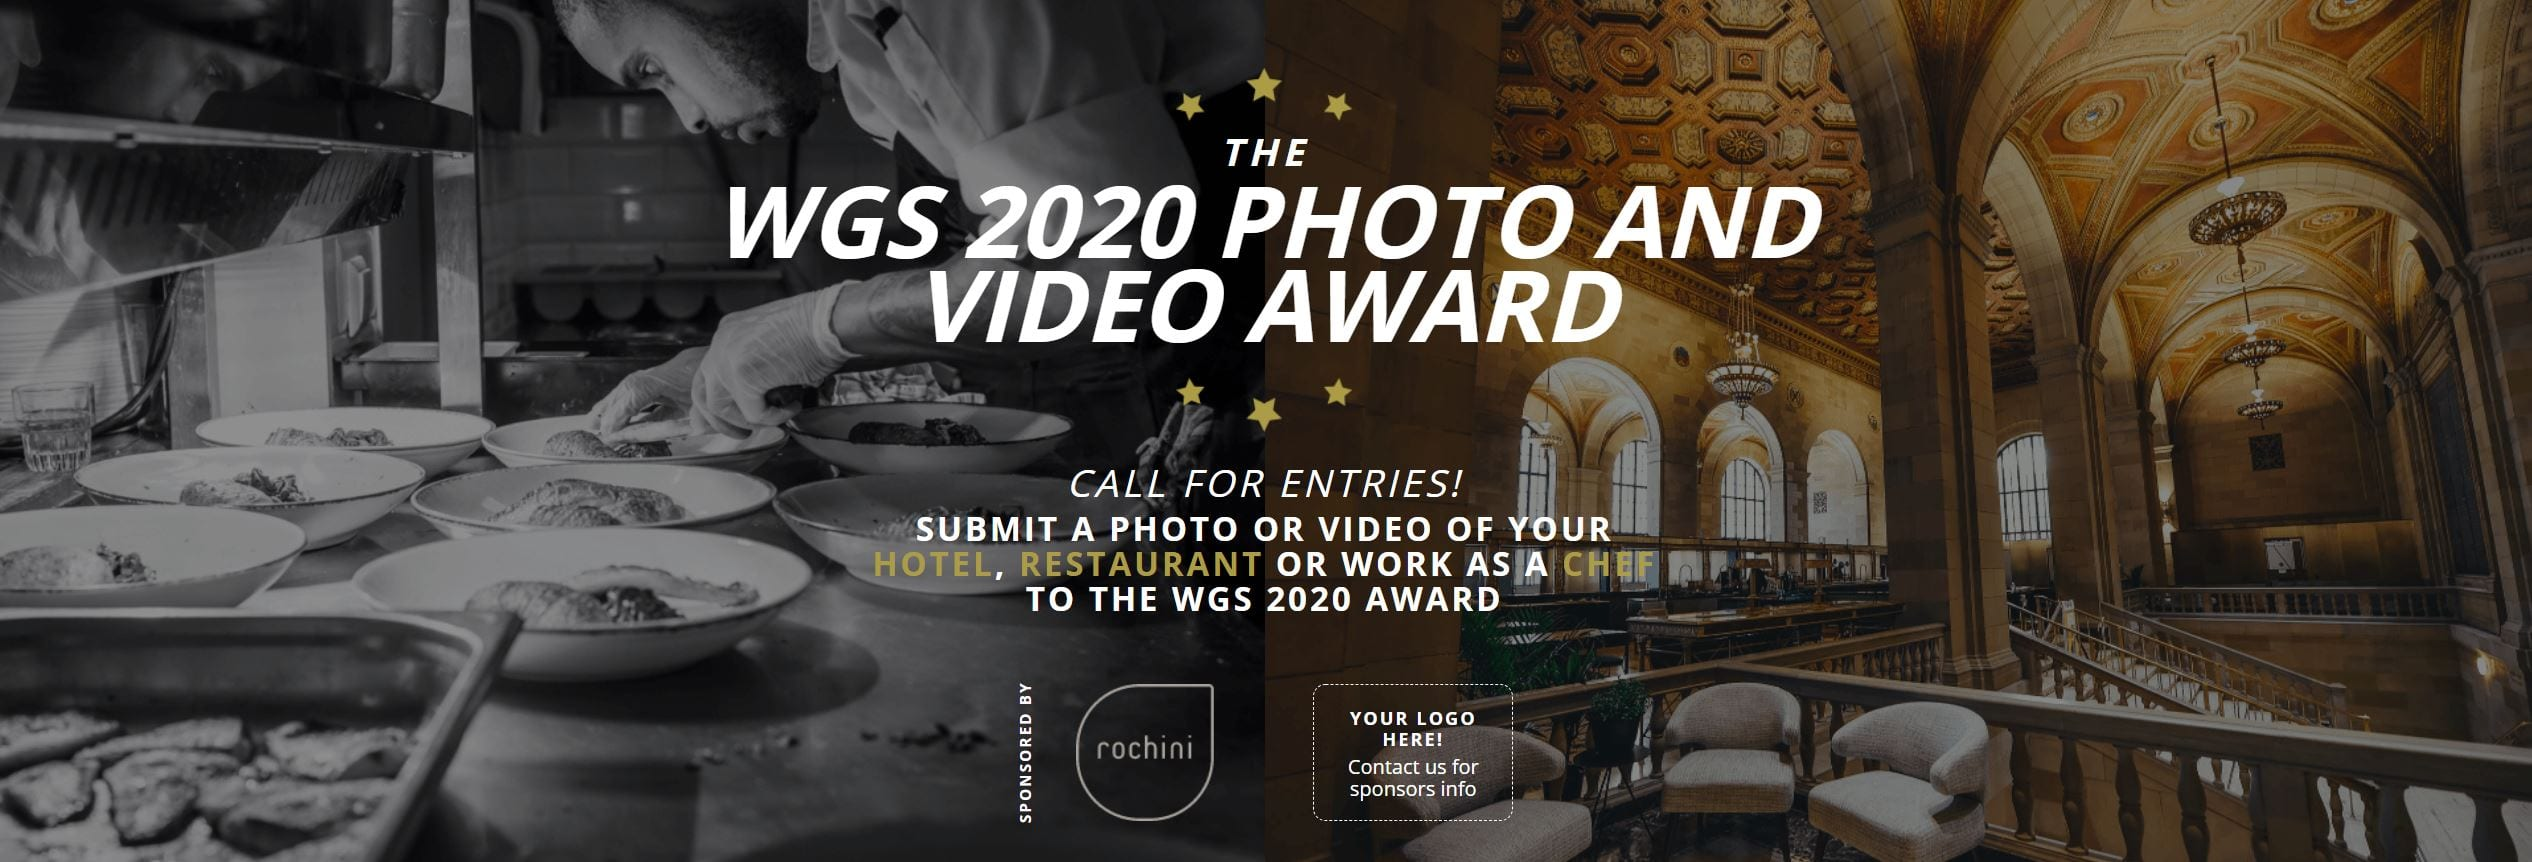 WGS THE WORLD GOURMET SOCIETY AWARD 2020